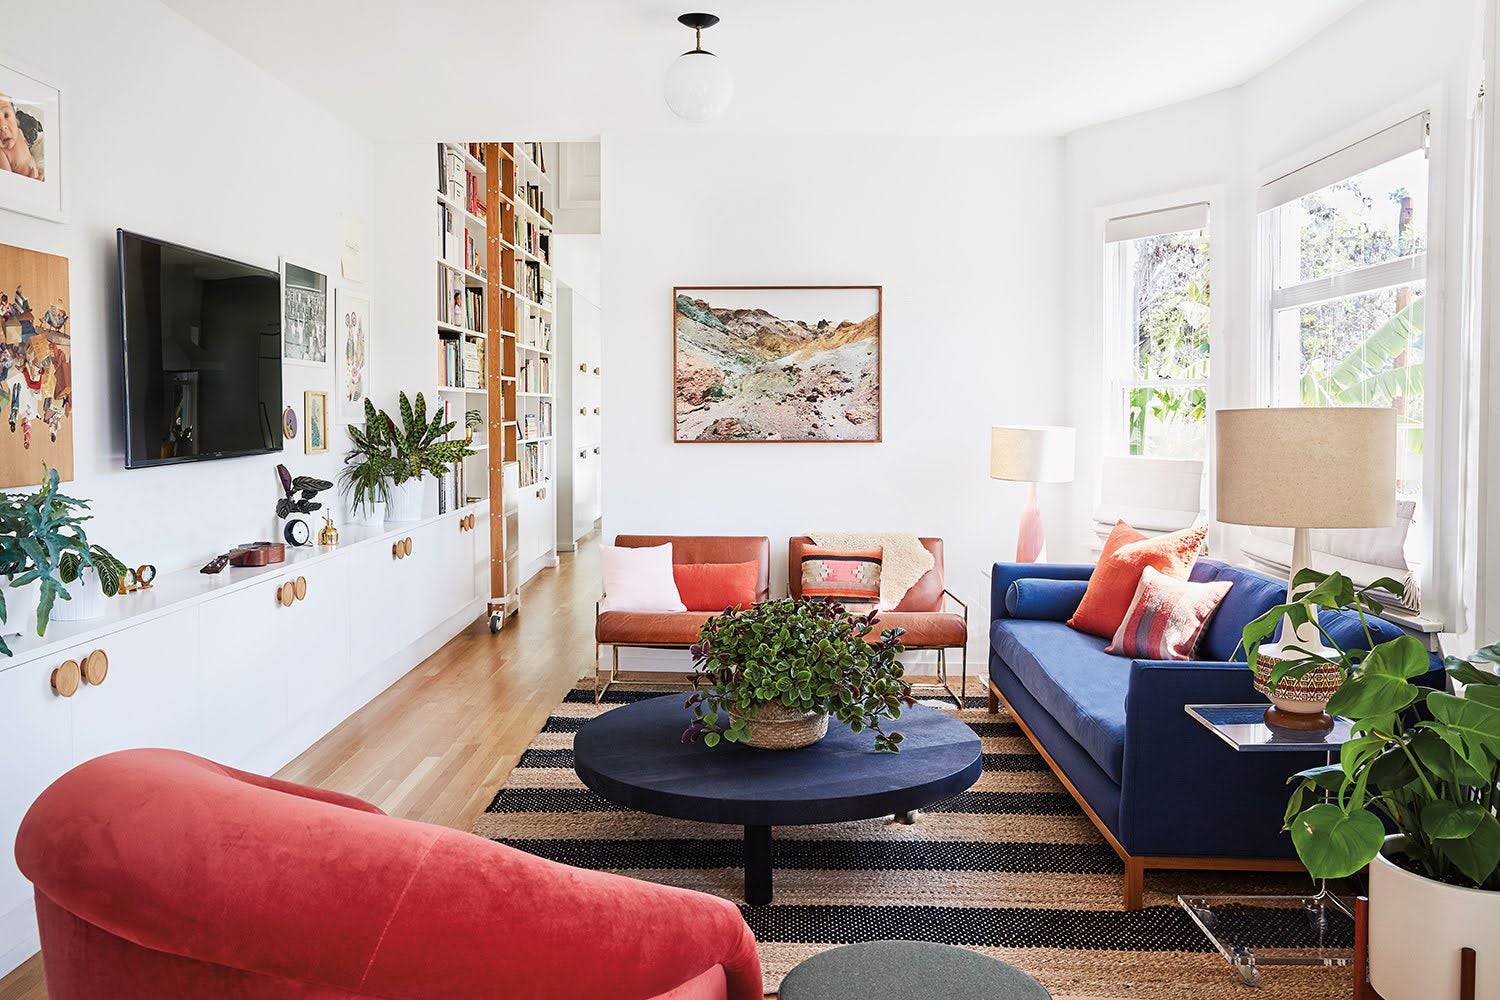 Small living room with red chairs and blue sofa